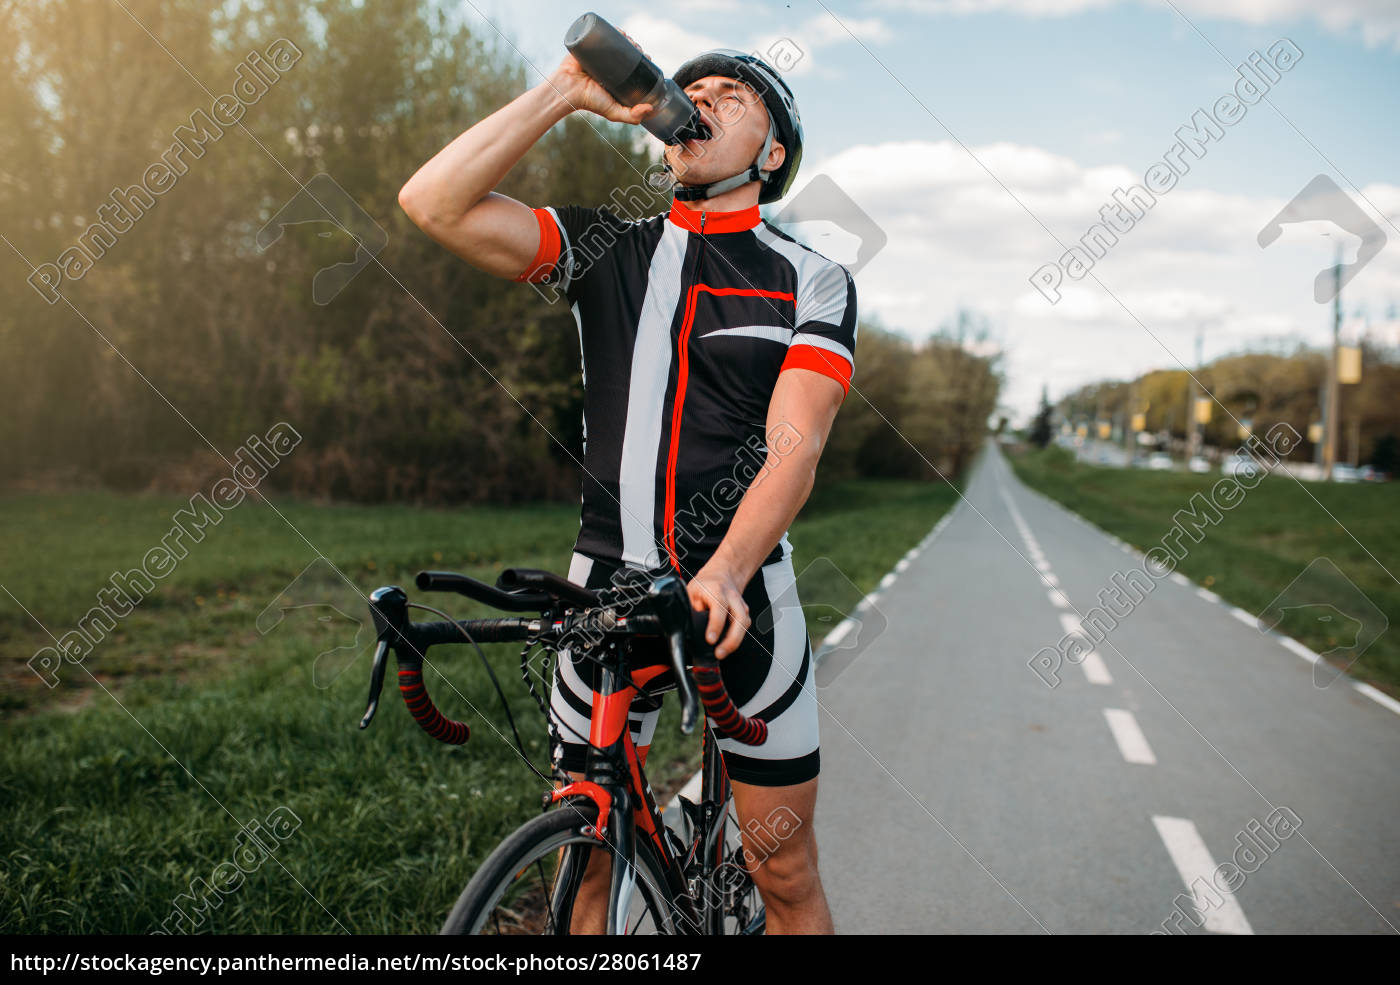 male, bycyclist, drinks, water, while, training - 28061487